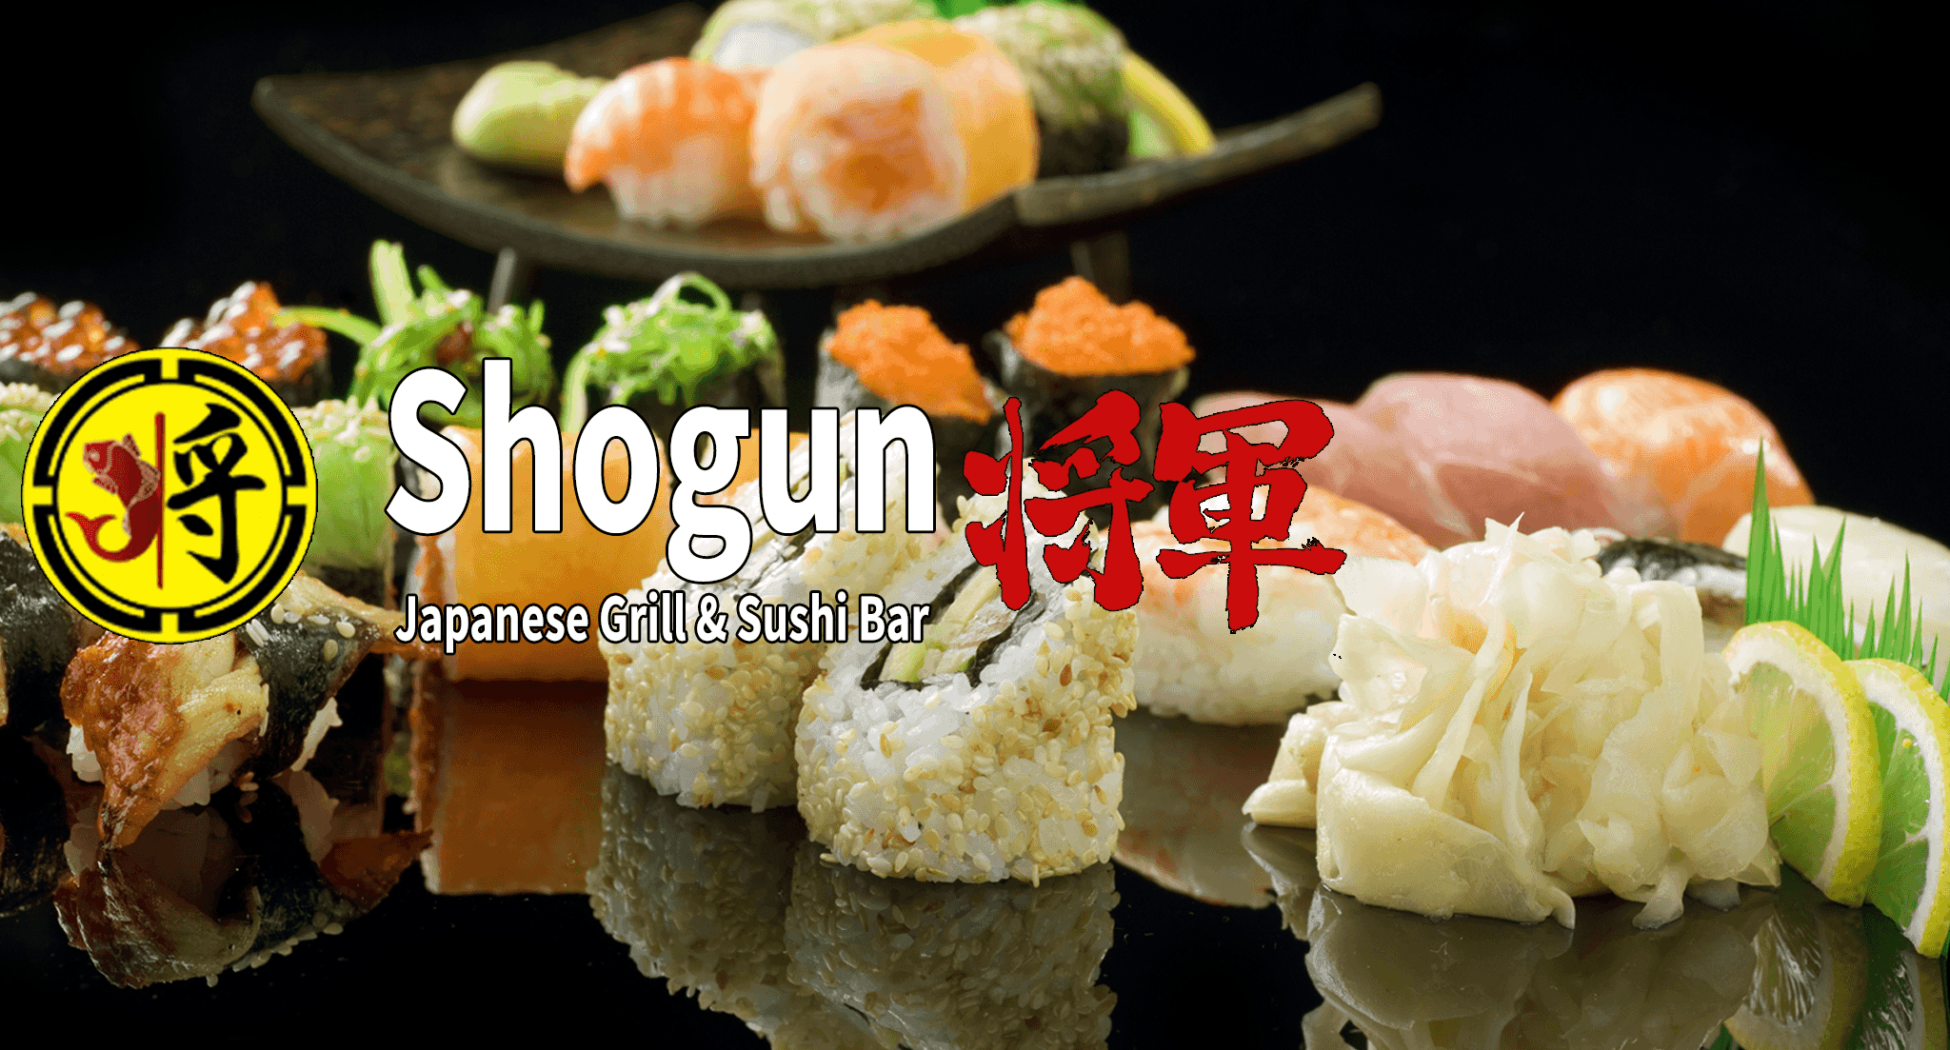 photo regarding Printable Coupons Shogun called Shogun Eastern Grill and Sushi Bar